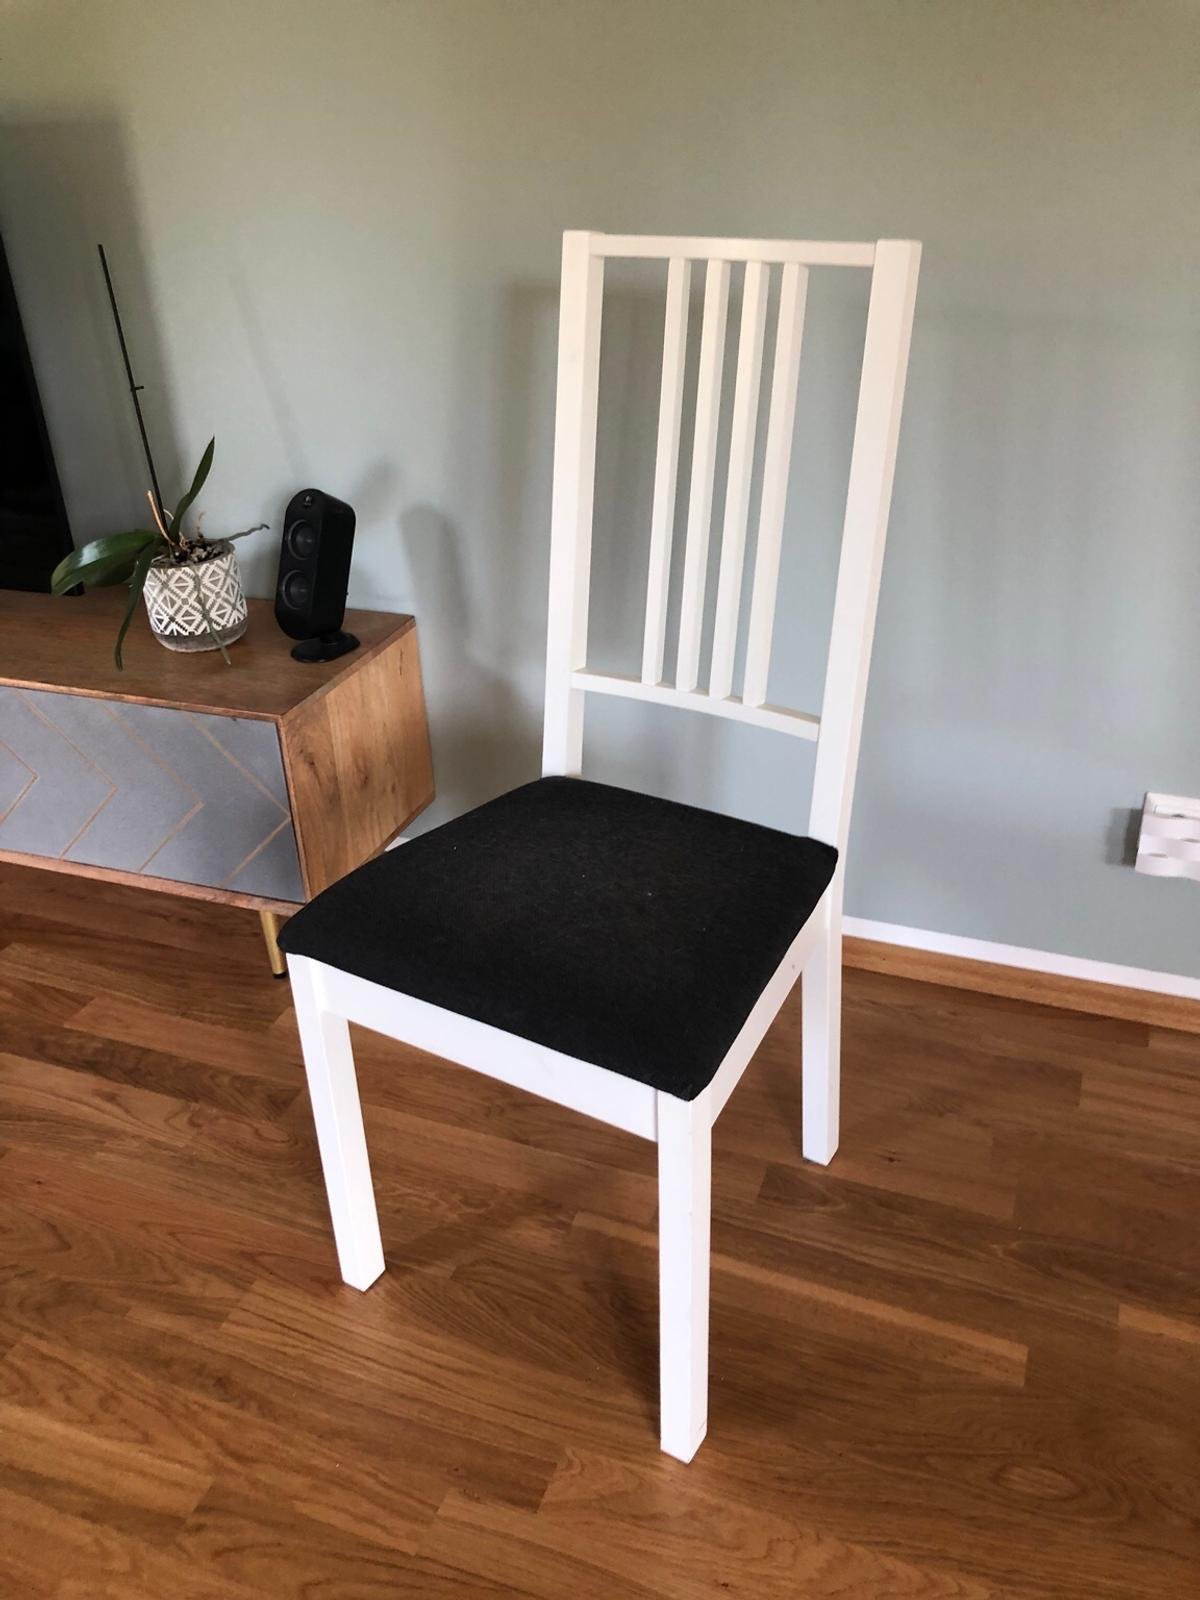 Ikea Esszimmer Stuhl In 04275 Leipzig For 15 00 For Sale Shpock